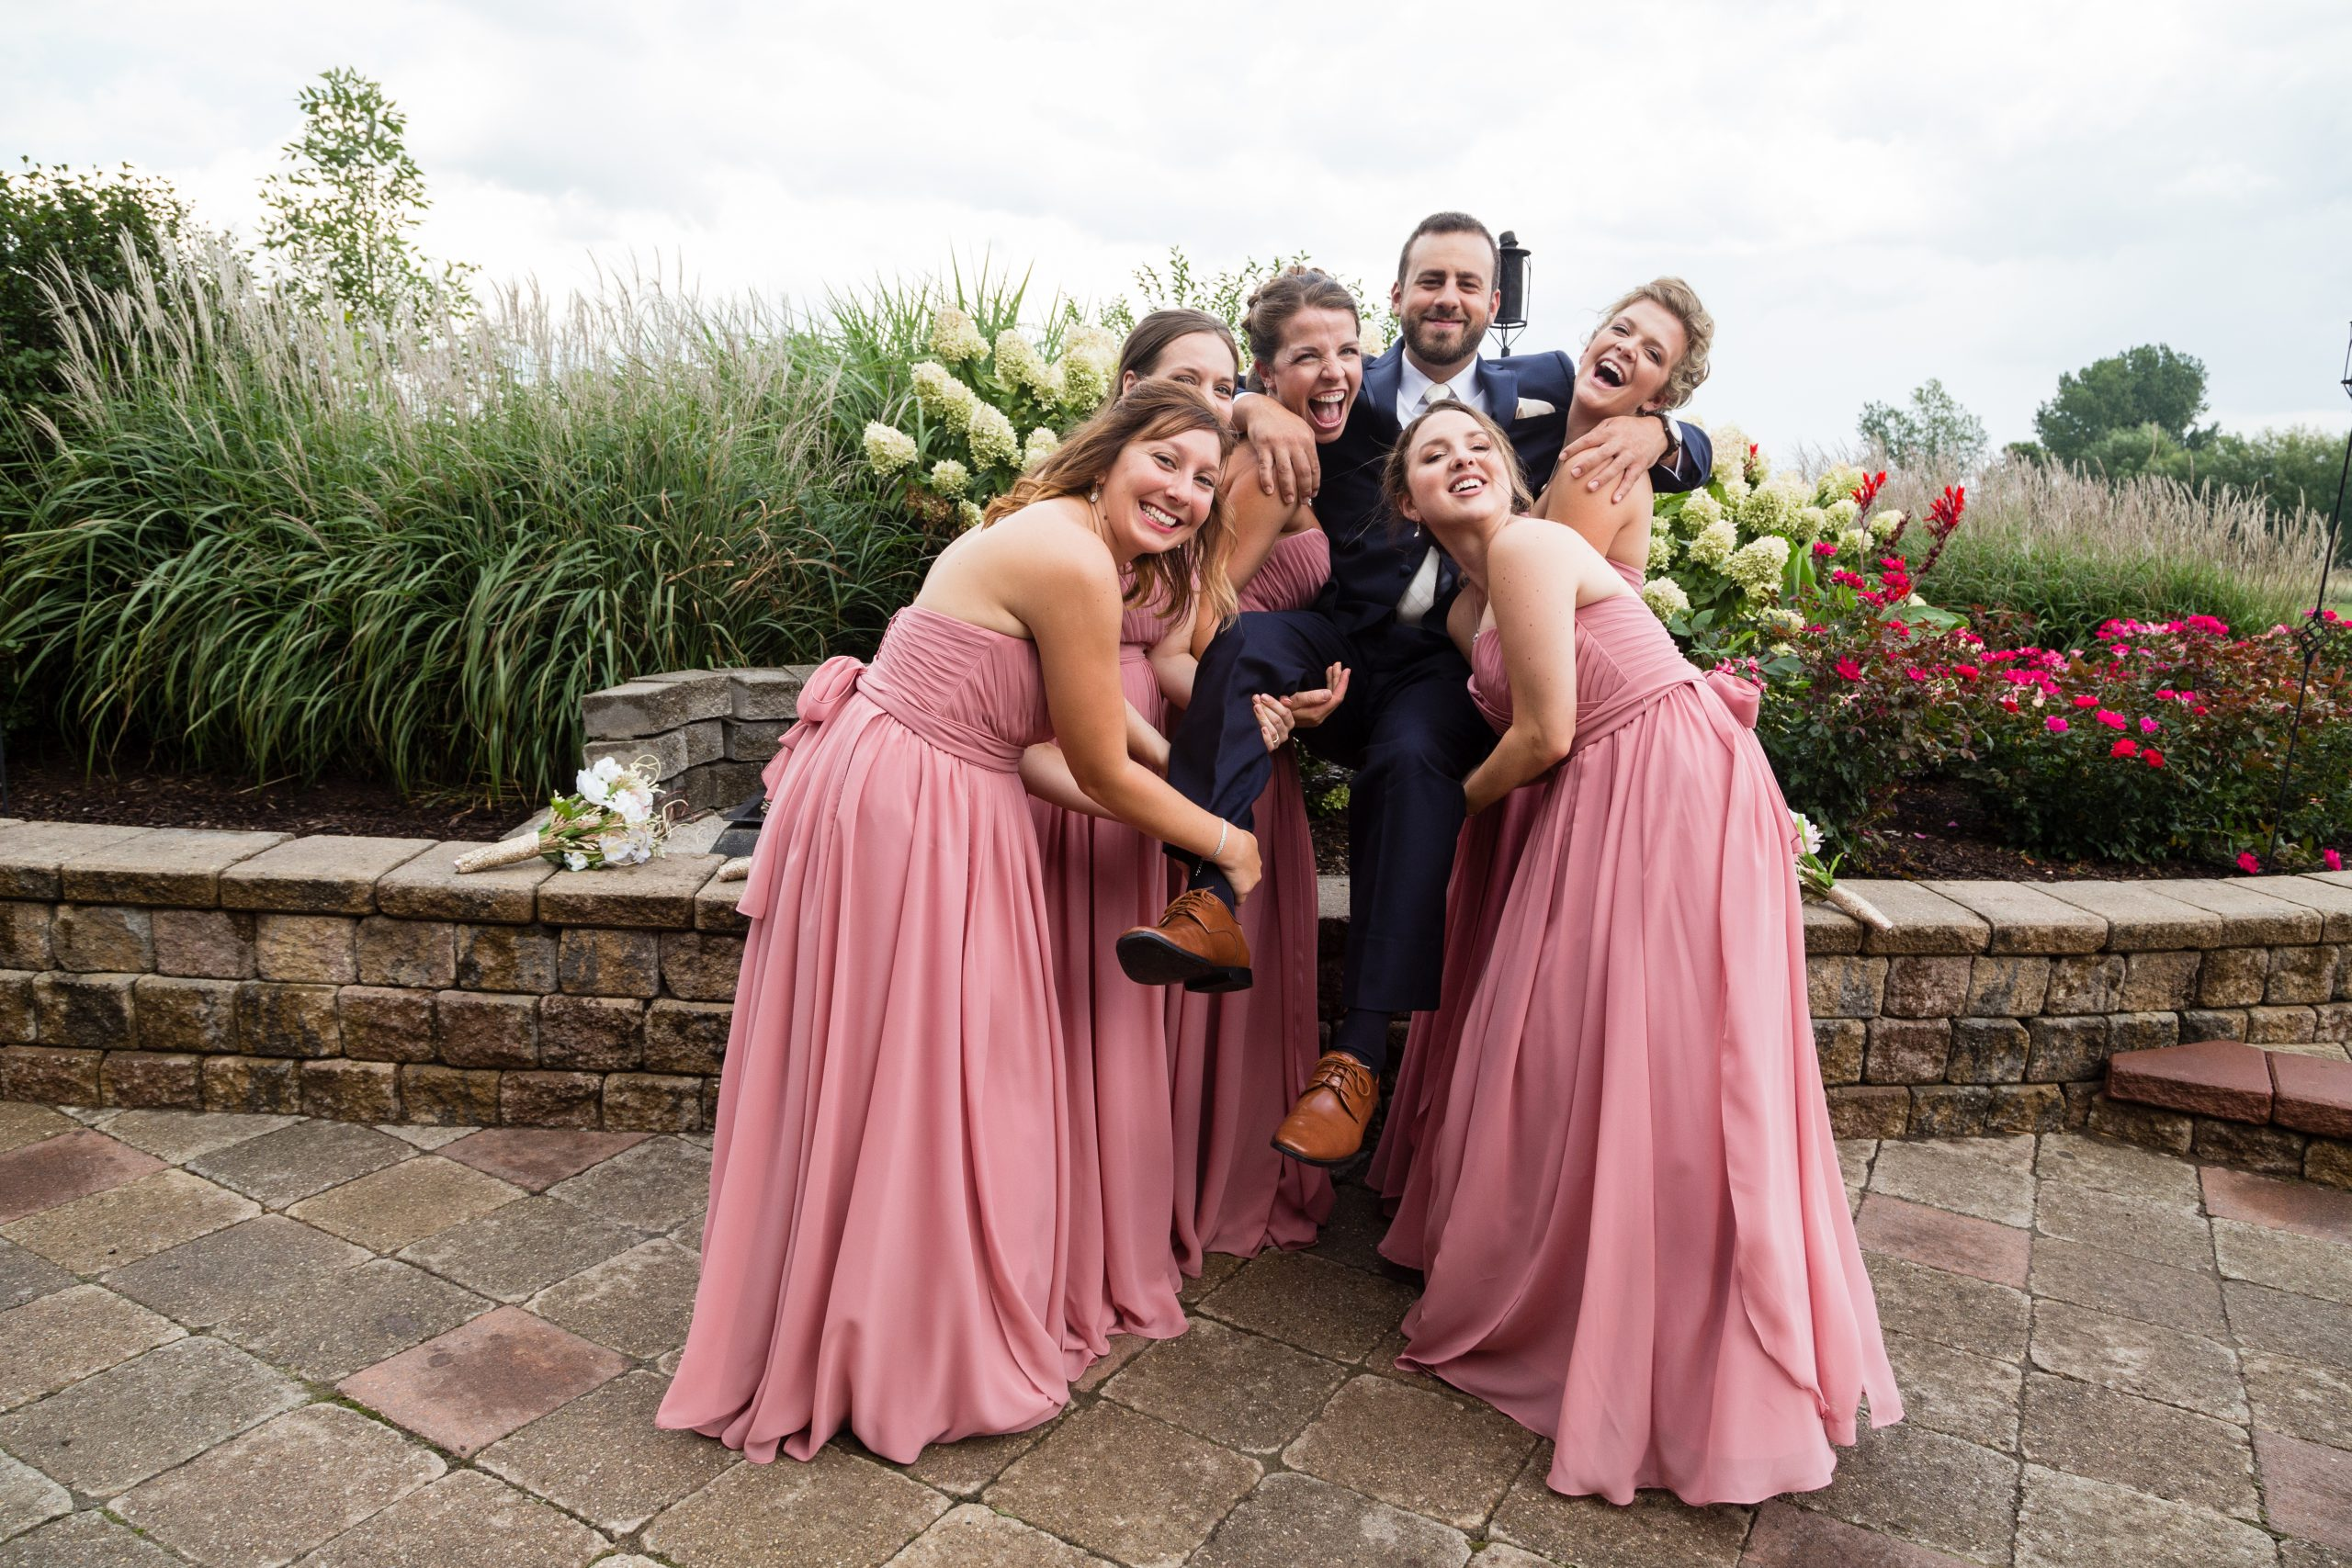 Funny wedding pose ideas with Bridal Party drinking at Timberlodge in Akron NY by Fallesen Photograph LLCy